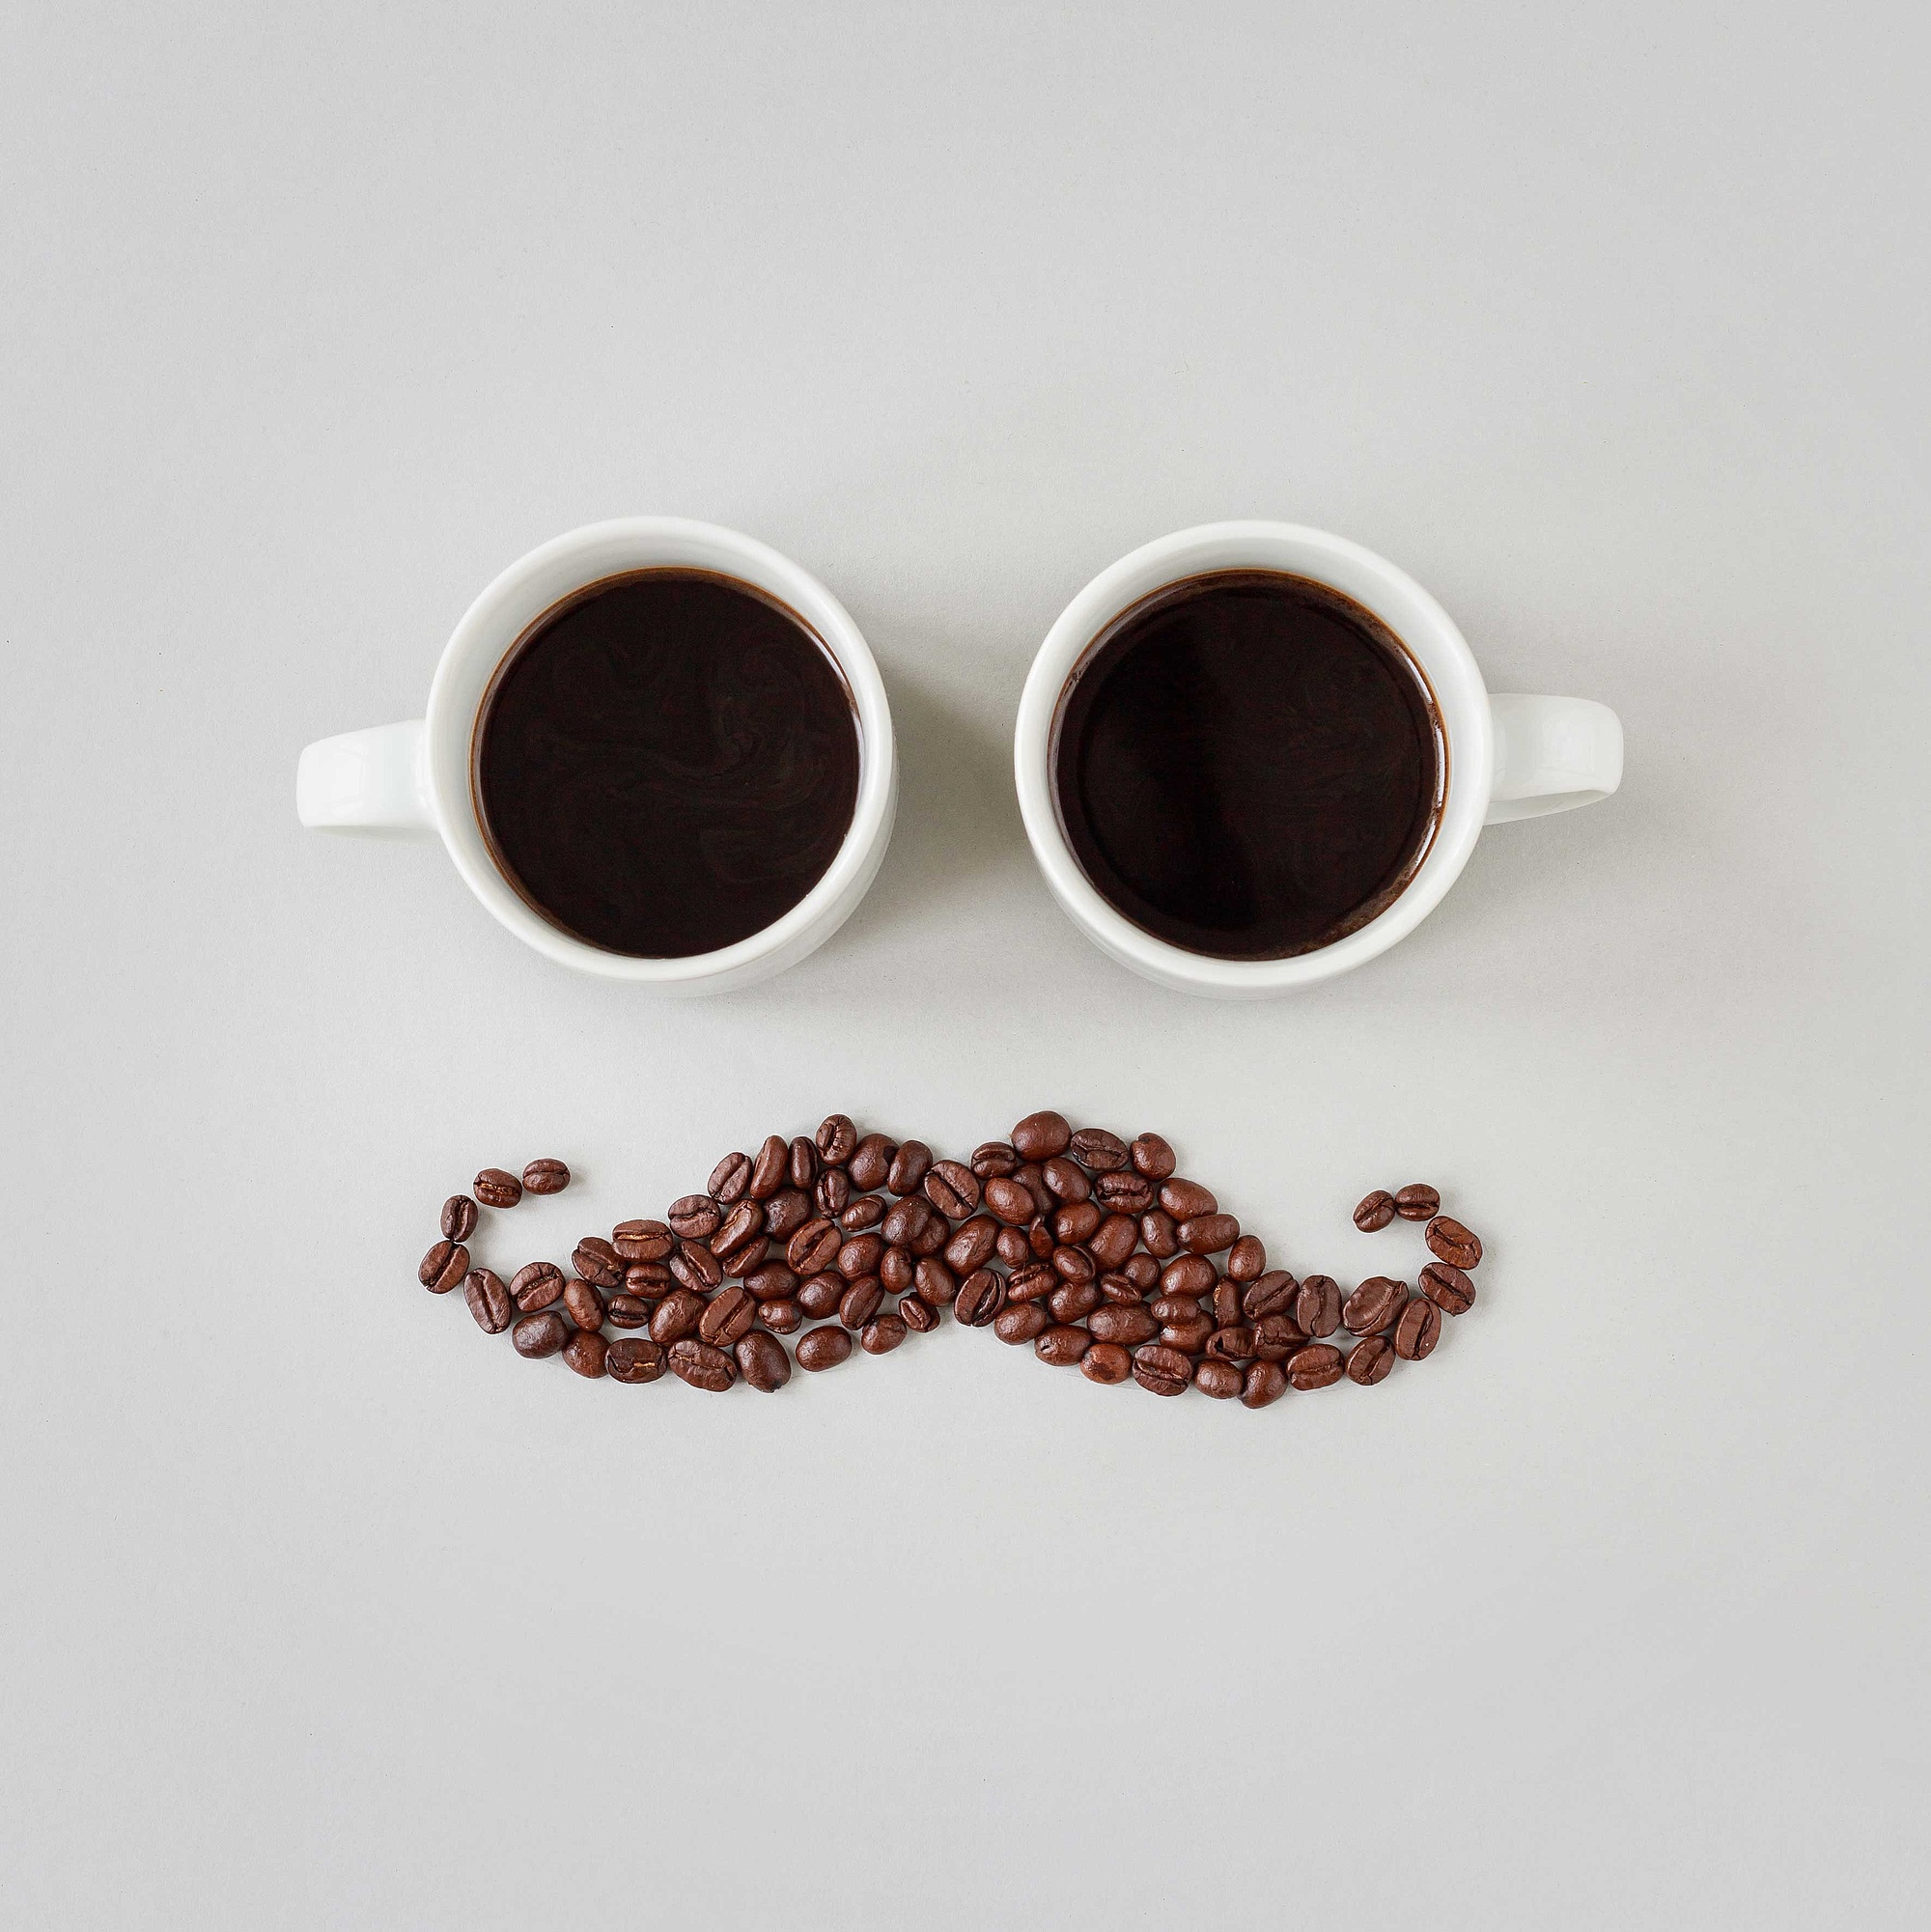 Coffee cups and coffee beans form a face with a moustache.